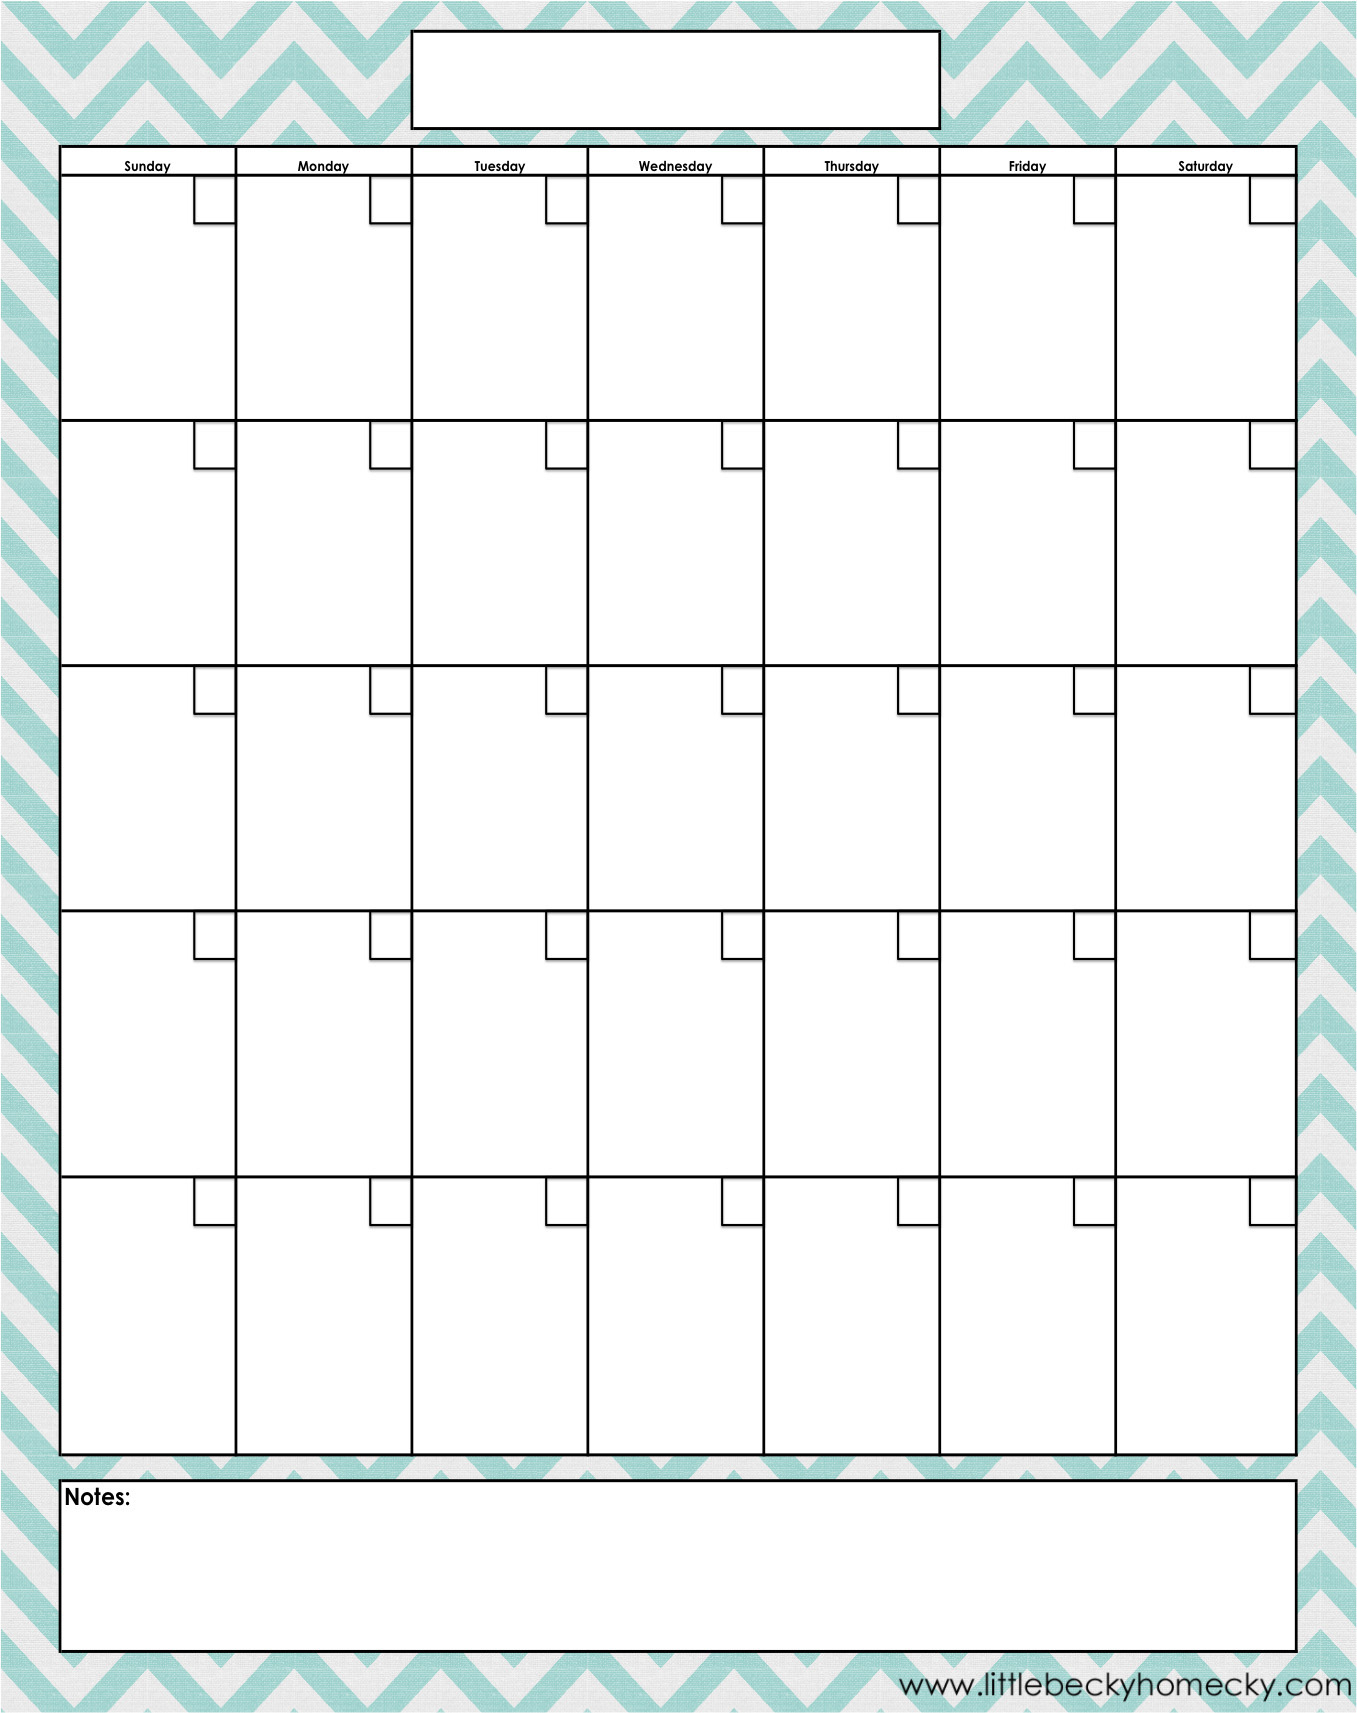 Blank-Monthly-Calendar-Printable-Pdfs pertaining to Blank Monthly Calendars To Print